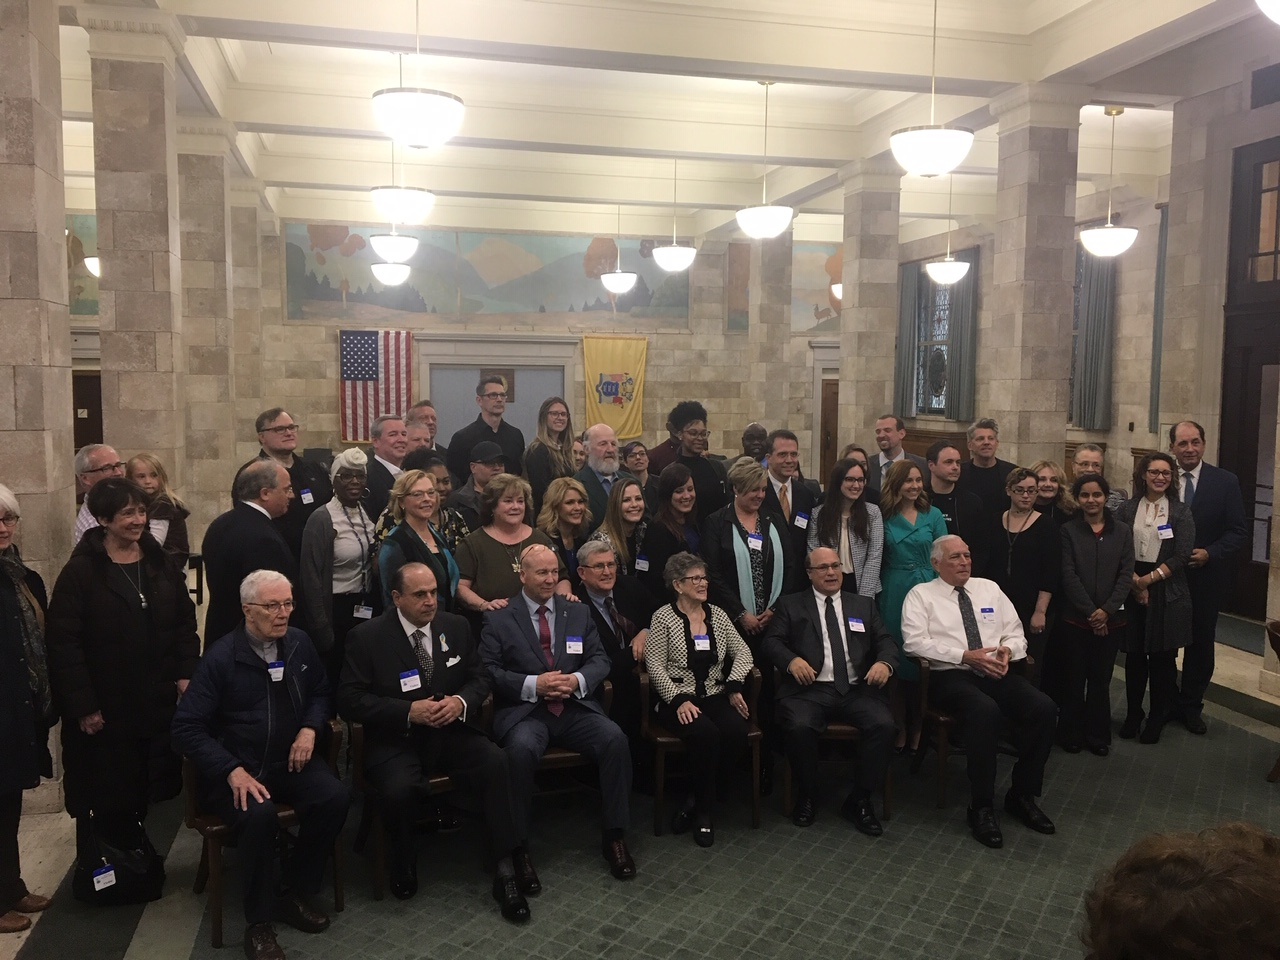 Group the passed the Statue of Limitations reform in New Jersey, May 13, 2019